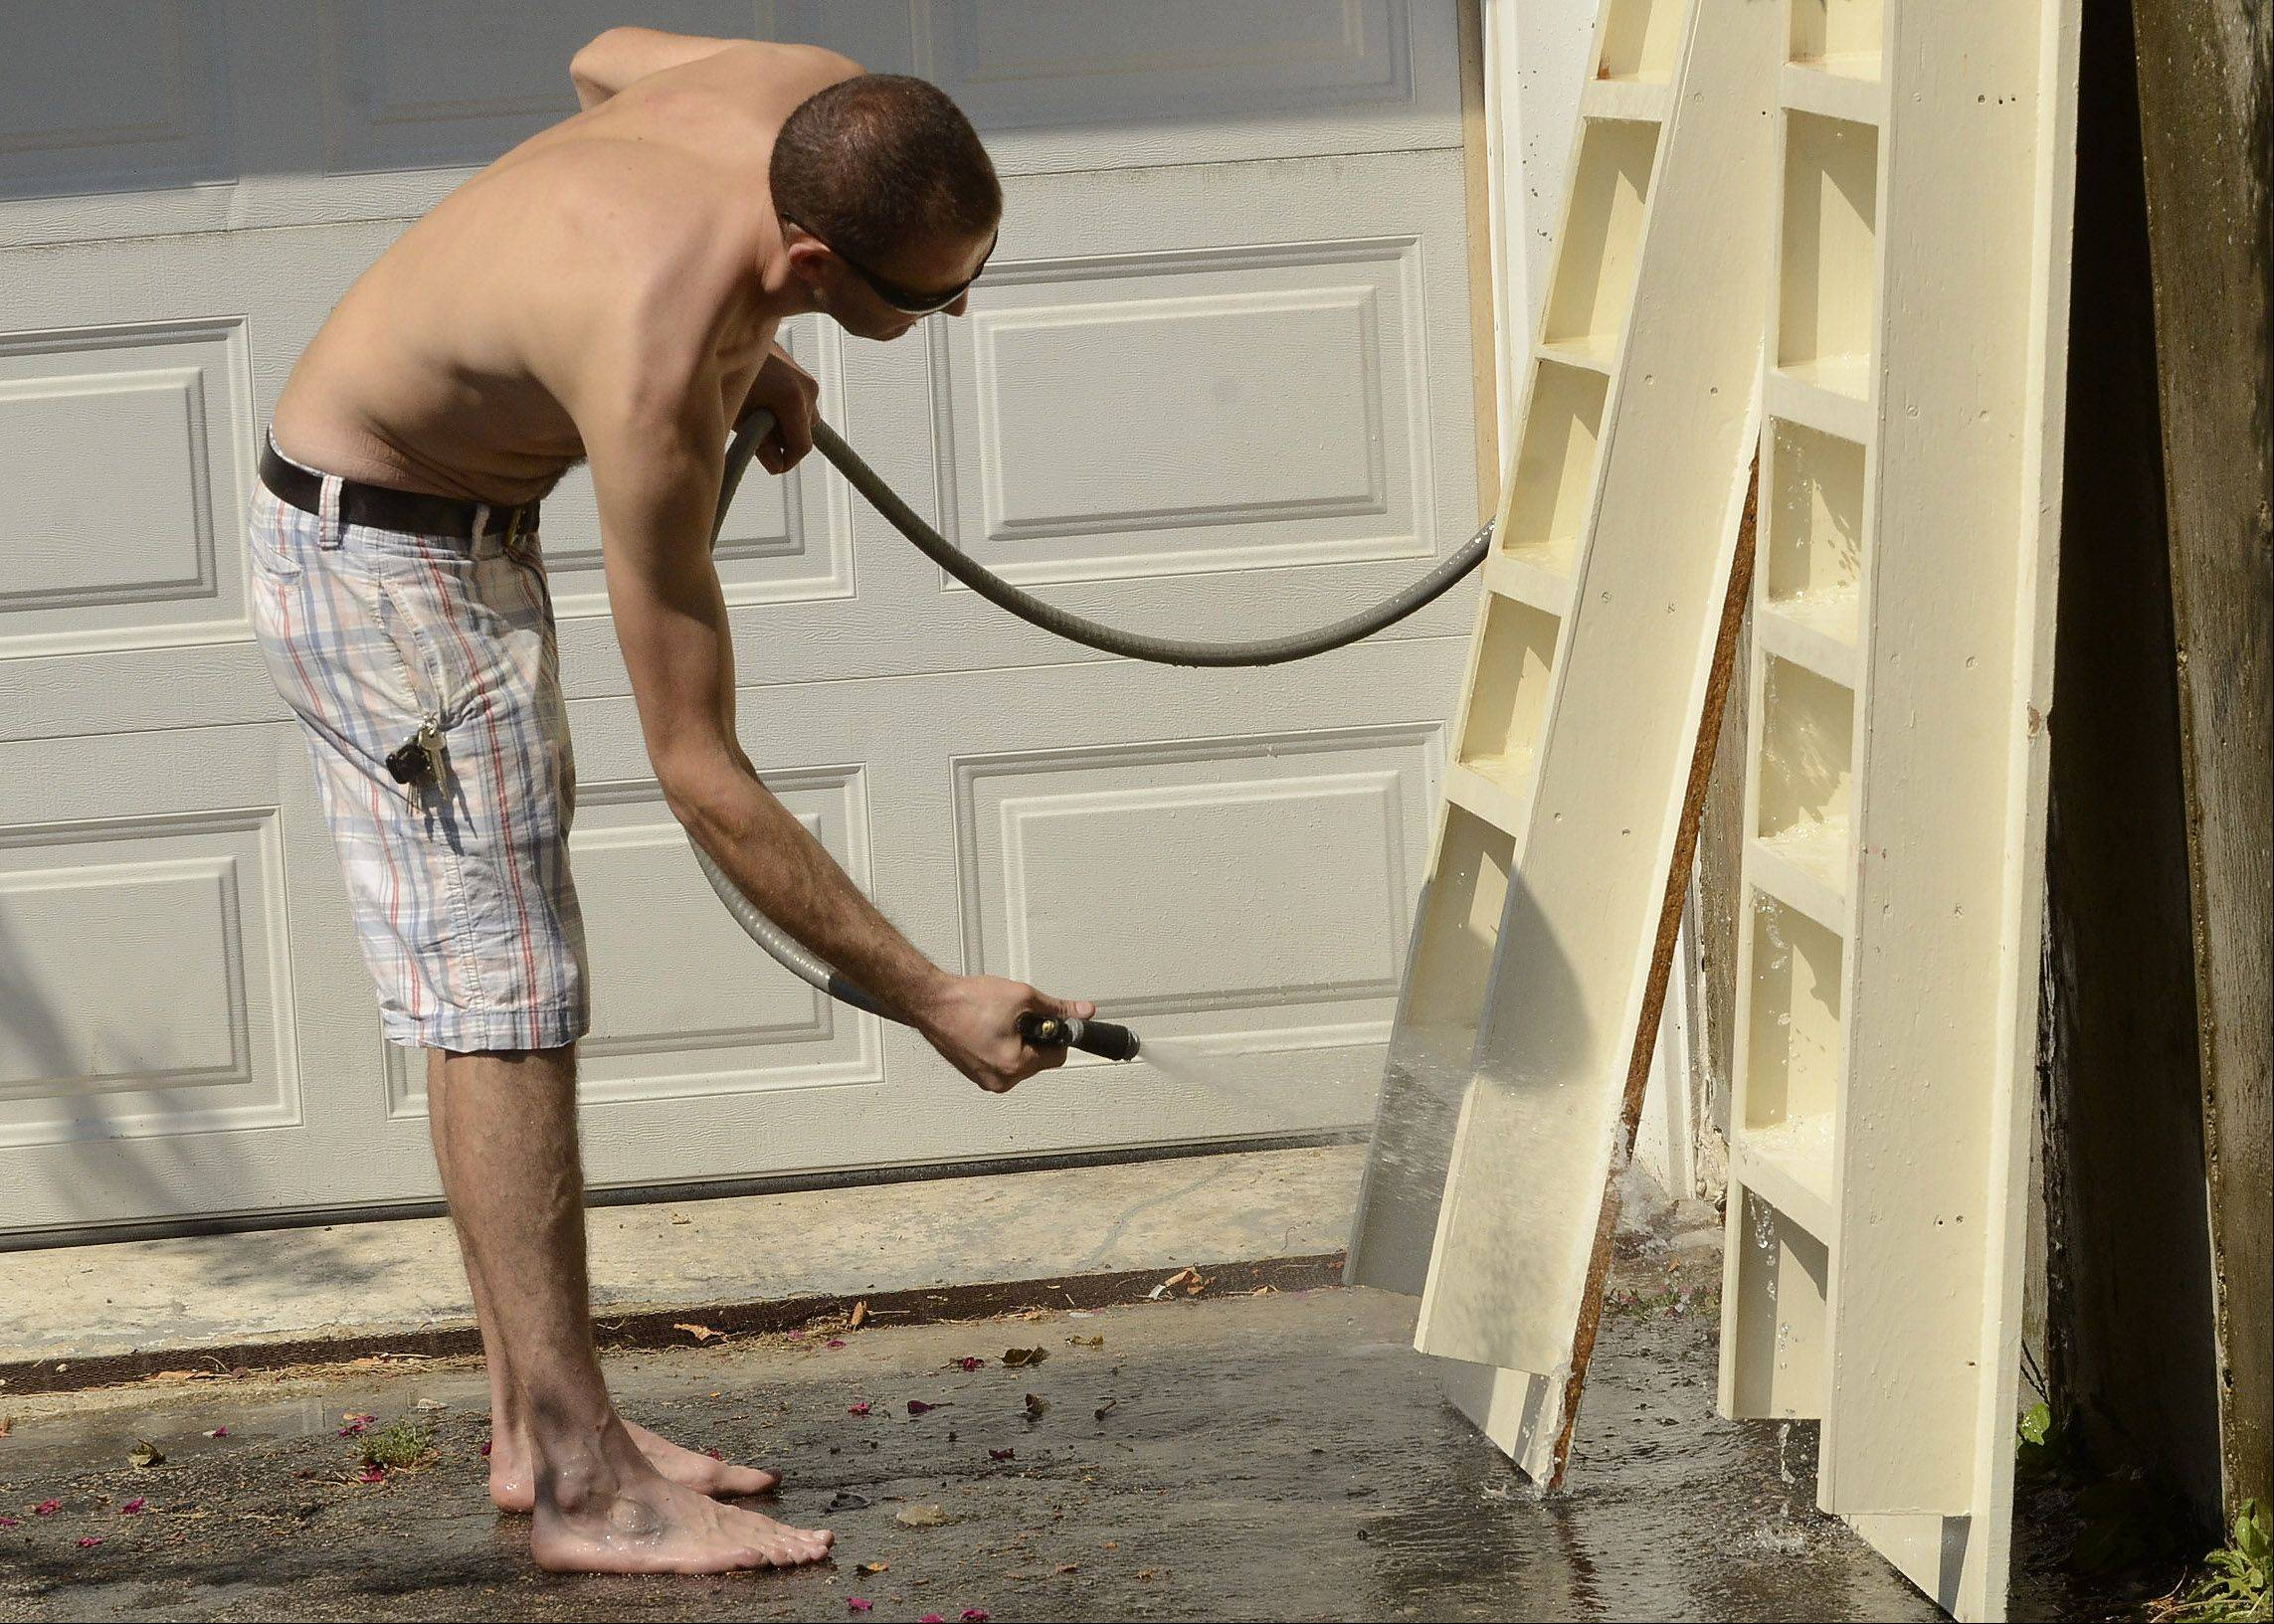 Peter Zob of Hoffman Estates stays cool while hosing down some of his garage shelves Tuesday. Zob said he'd head inside as soon as he was finished as temperatures reached record-tying levels Tuesday.